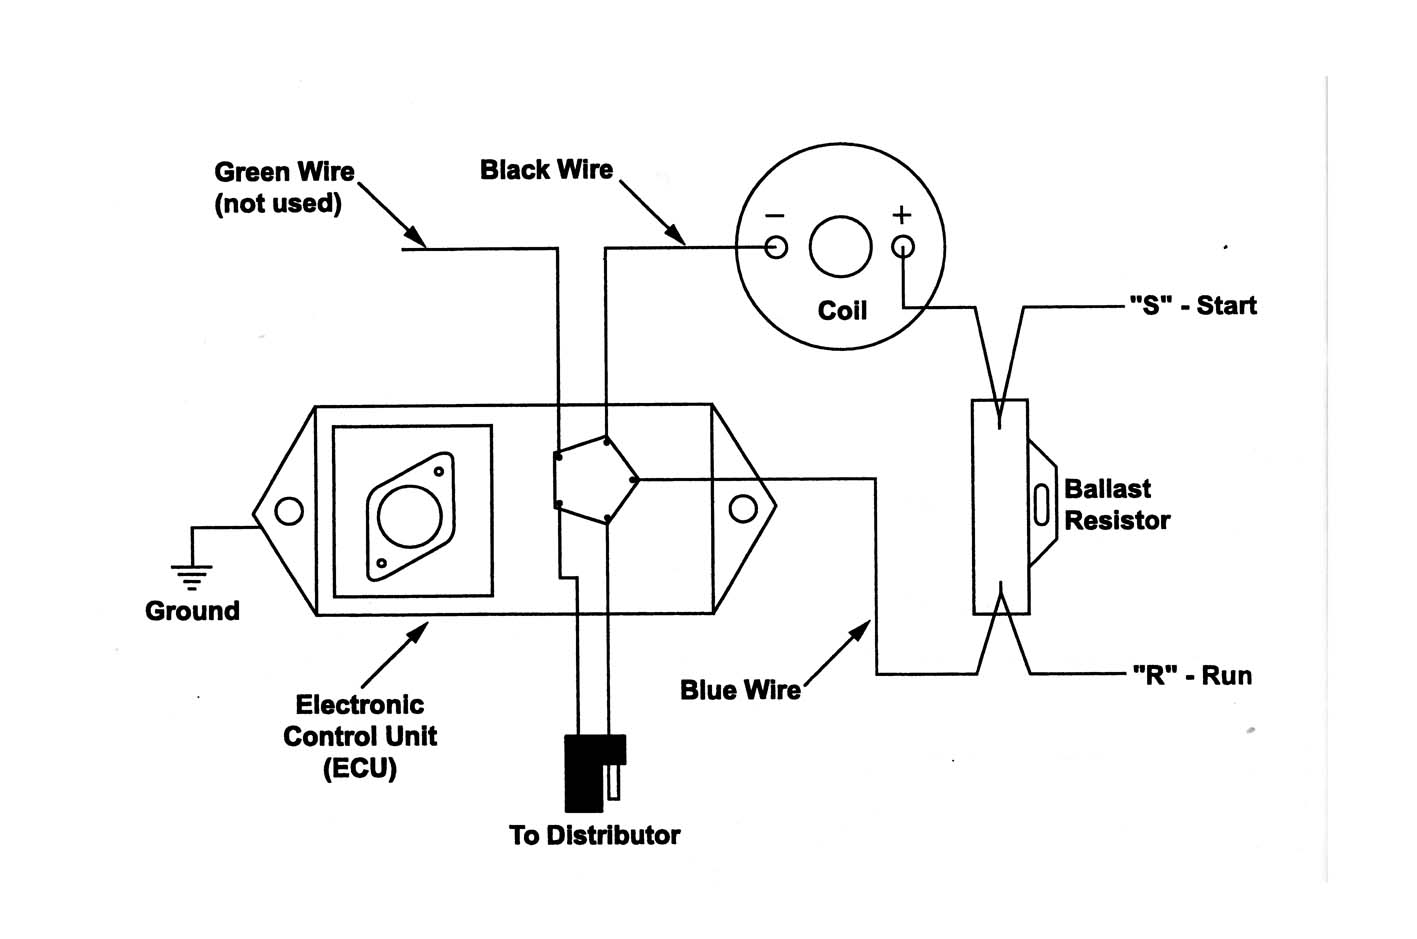 1977 Dodge Ignition Wiring Diagram http://www.forwardlook.net/forums/forums/thread-view.asp?tid=27487